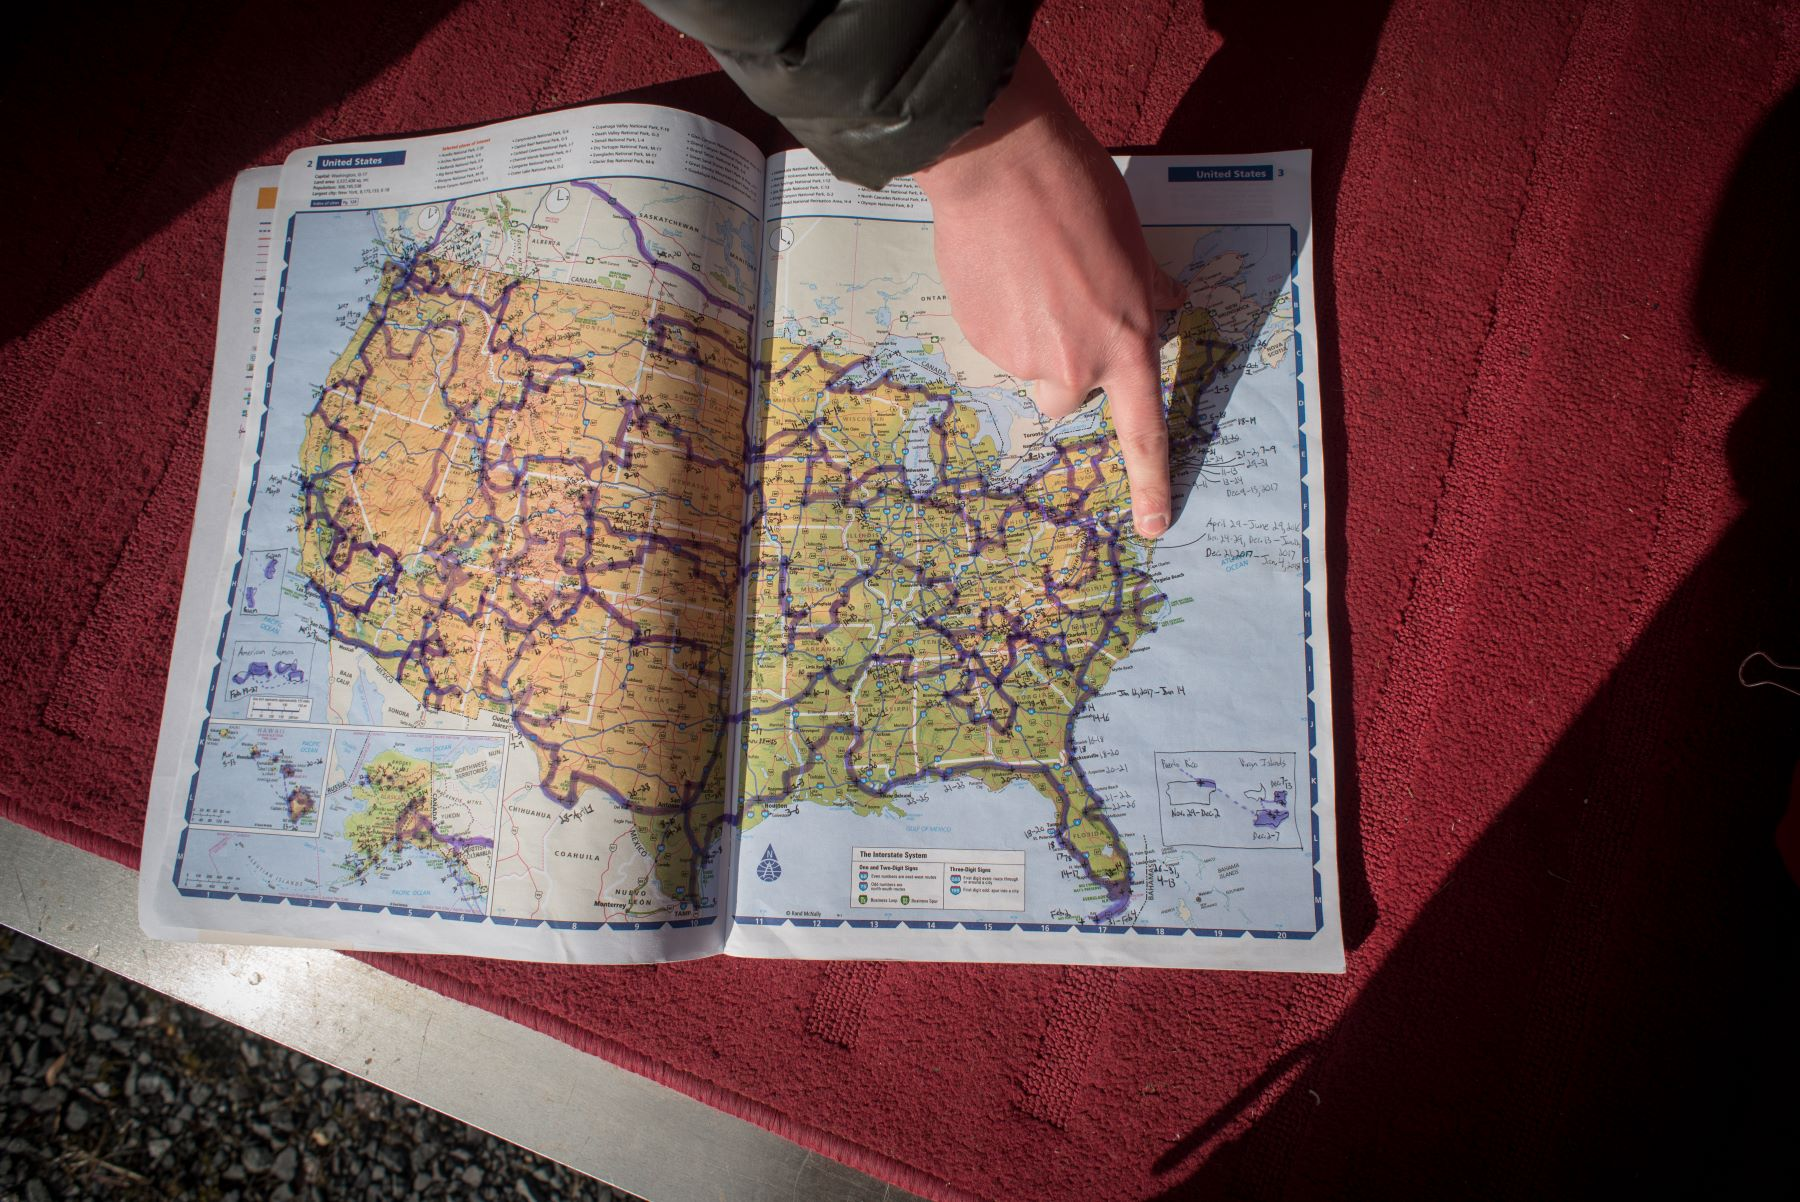 Someone pointing to a location on a map of the United States